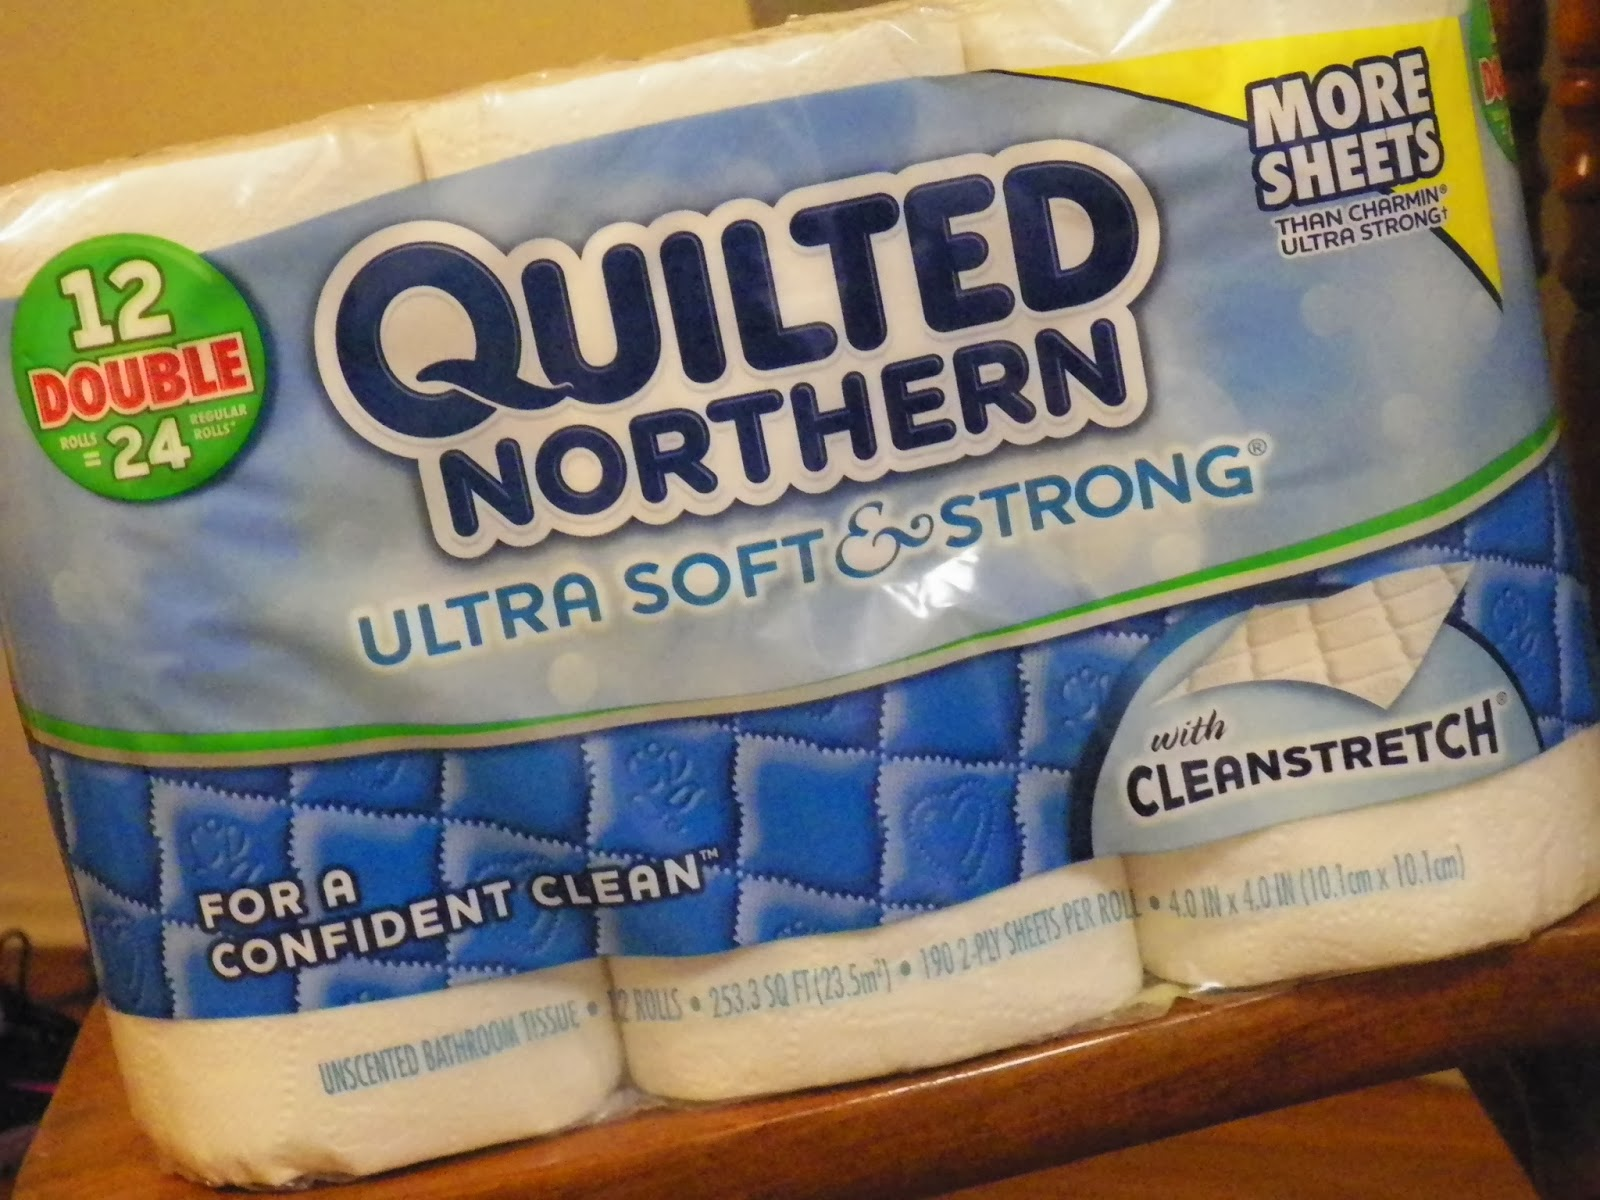 Toilet paper brands the tissue paper brands